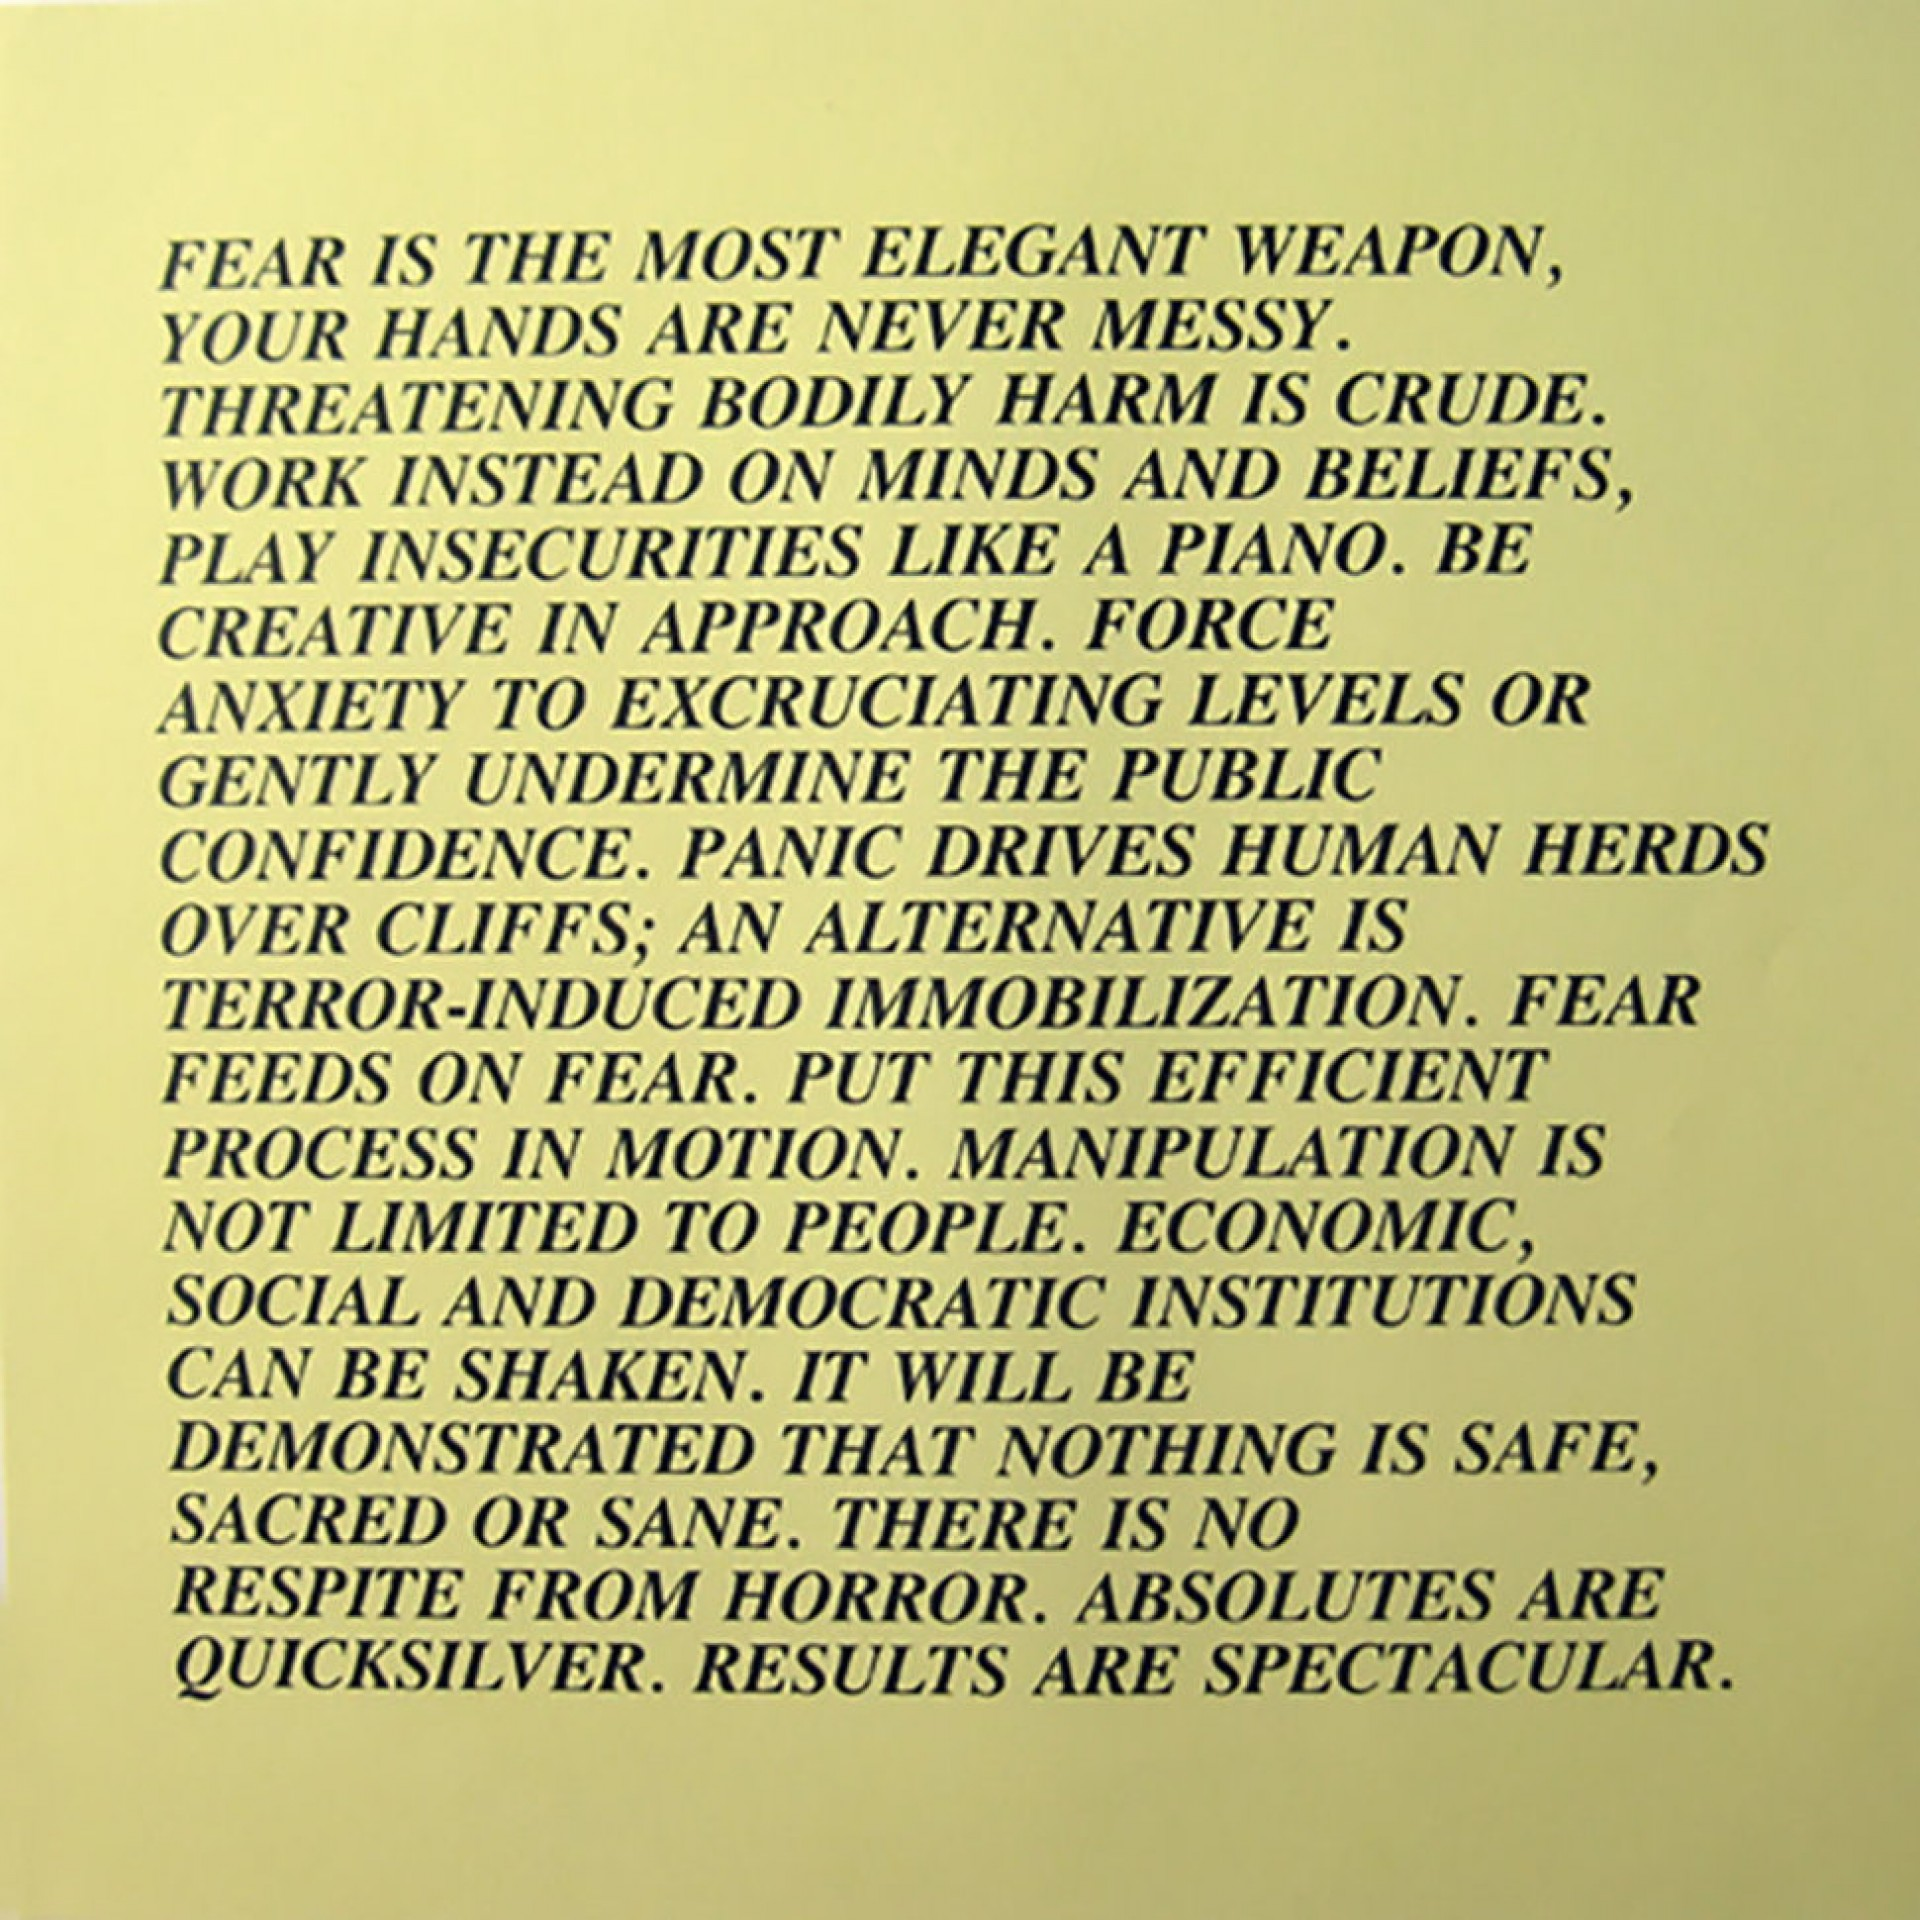 009 Essay Example Jenny Holzer Inflammatory Essays 588755442900002700dd15cbopsscalefit 970 Noupscale Awful For Sale Print Buy 1920